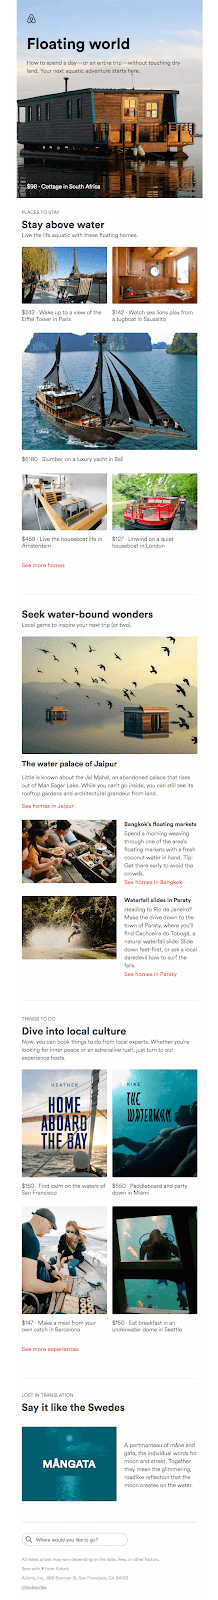 "hospitality email marketing example ""floating world"" Airbnb"